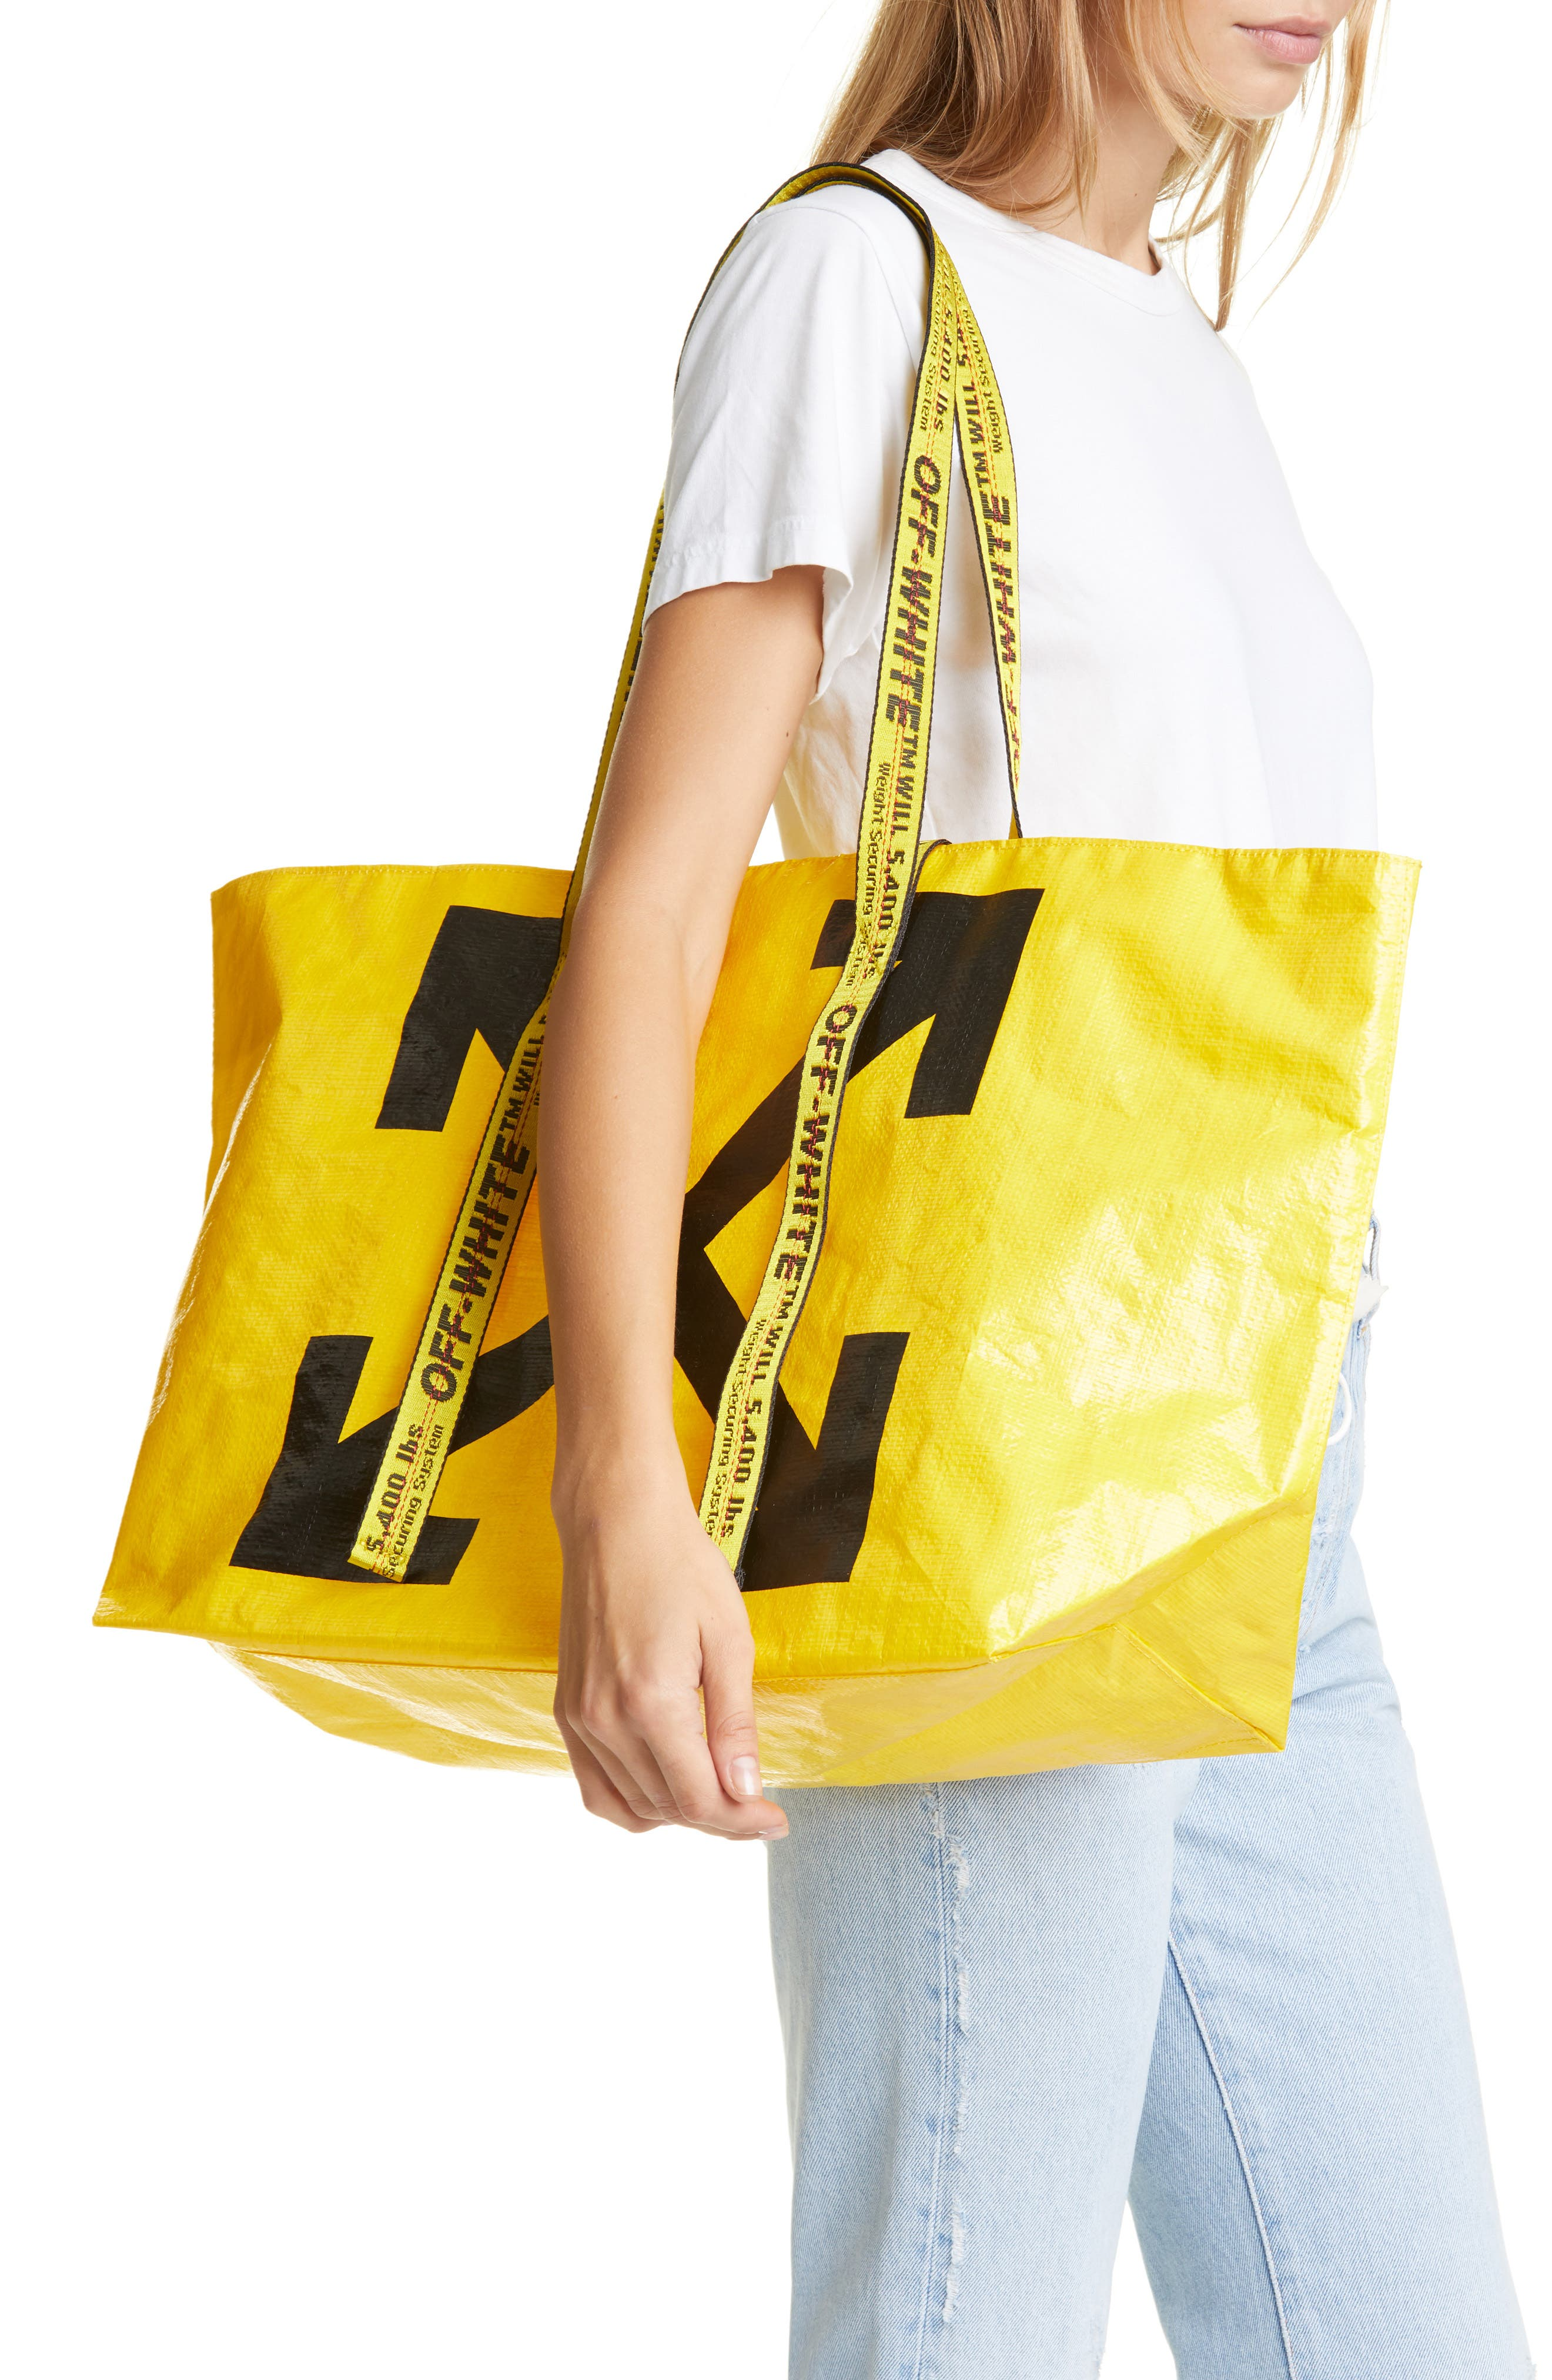 Off-White Totes New Commercial Tote